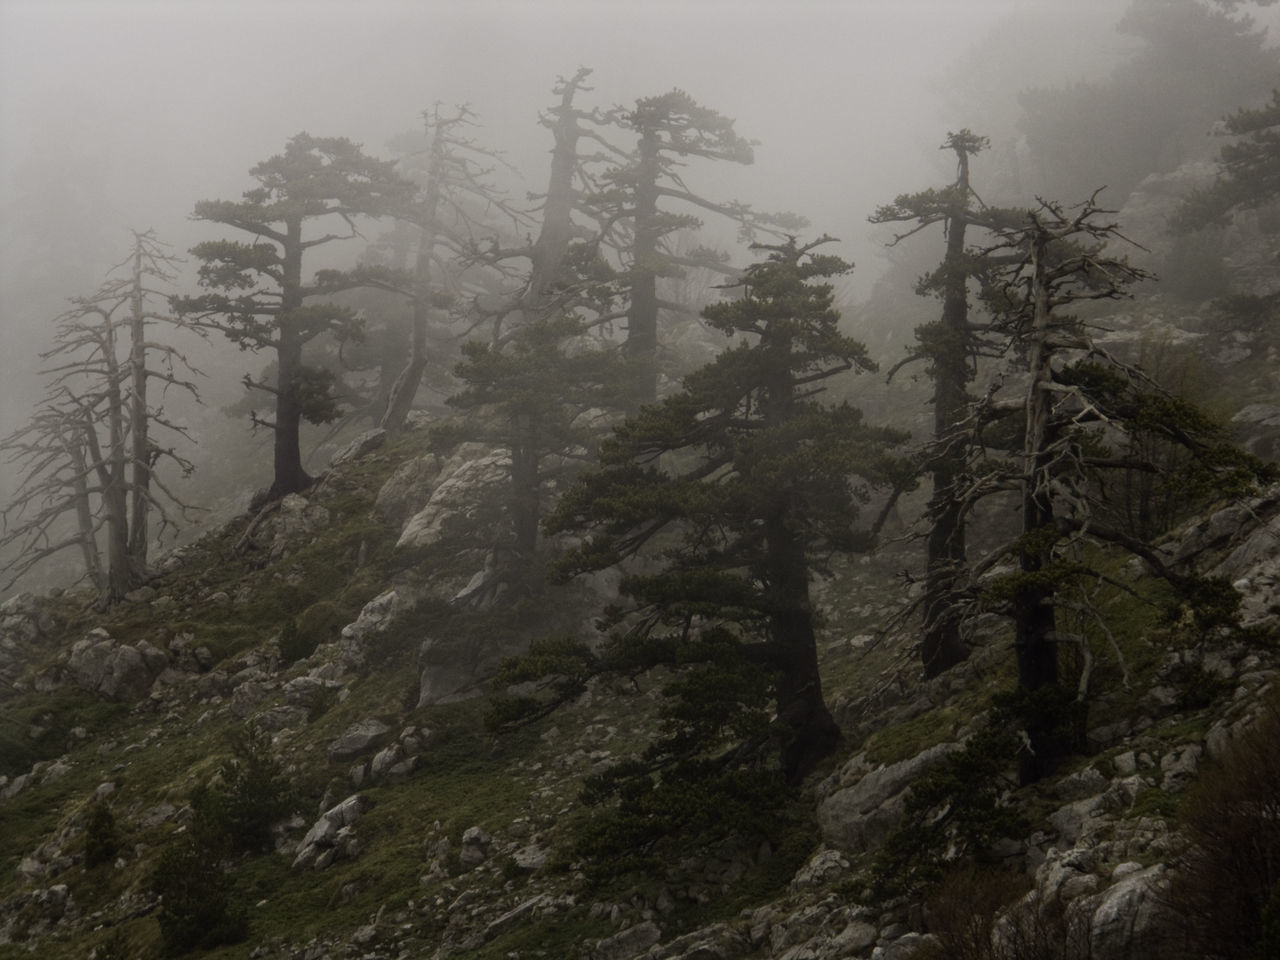 Idyllic Shot Of Pine Trees On Hill In Foggy Weather